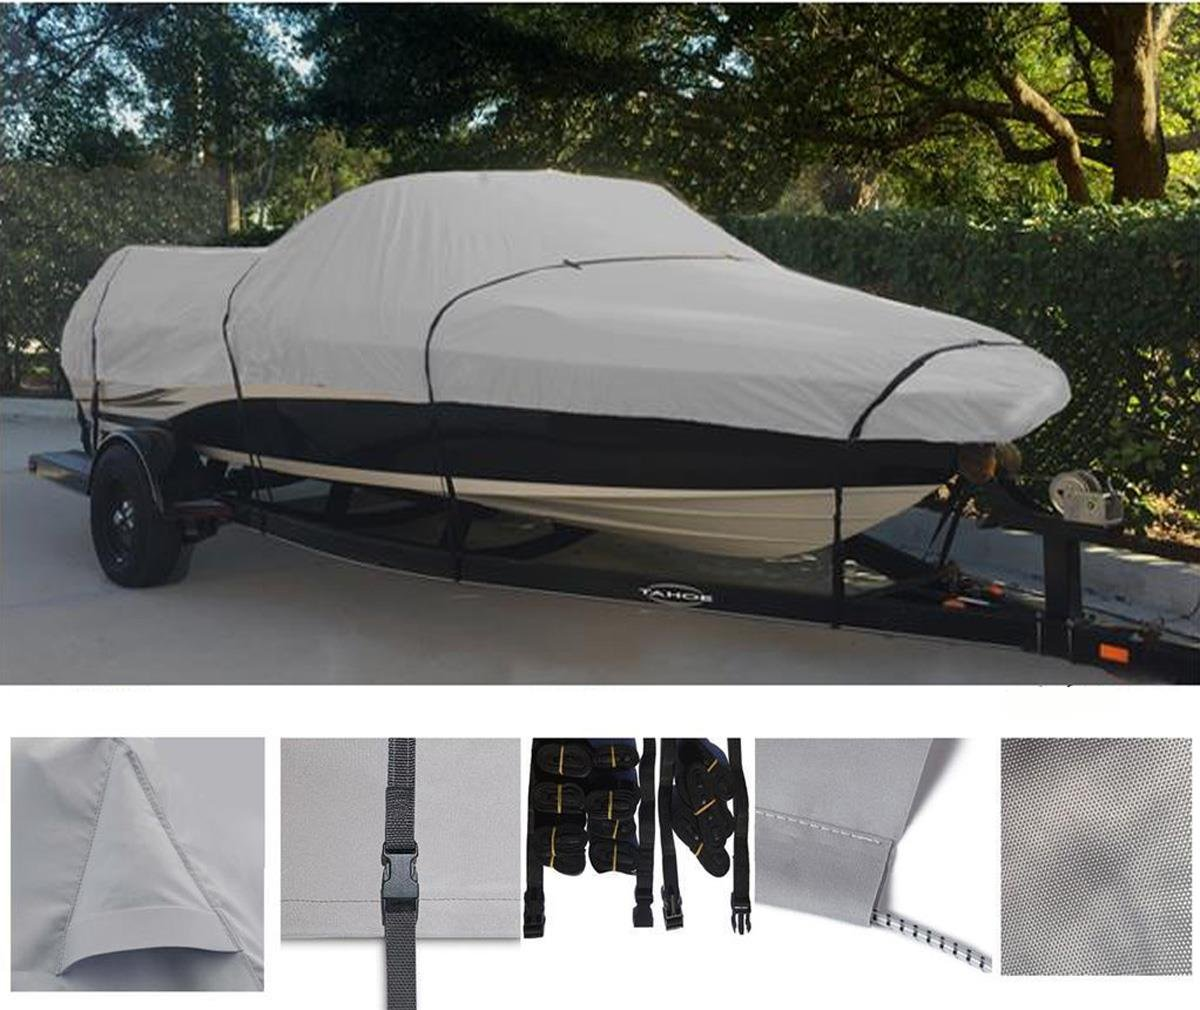 GREY, STORAGE, TRAVEL, MOORING BOAT COVER FOR MAXUM 1800 SR/XR BOWRIDER I/O 1991 1992 - 1995 by SBU